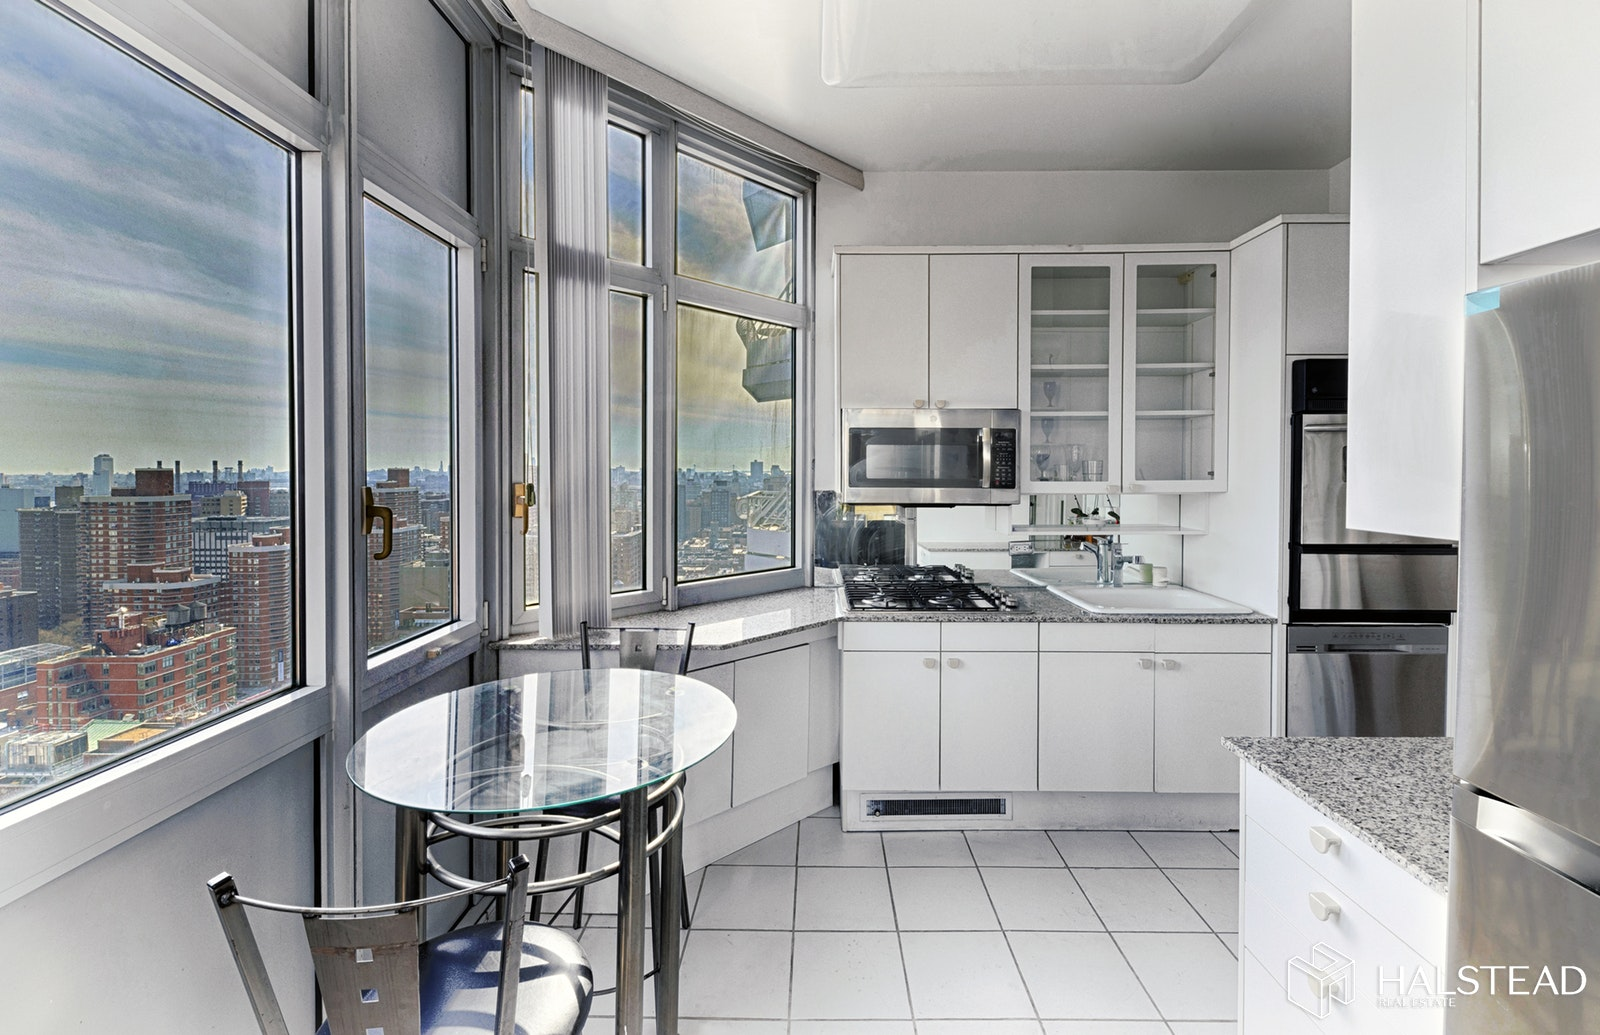 200 East 32nd Street 28e, Murray Hill Kips Bay, NYC, 10016, $1,650,000, Property For Sale, Halstead Real Estate, Photo 3